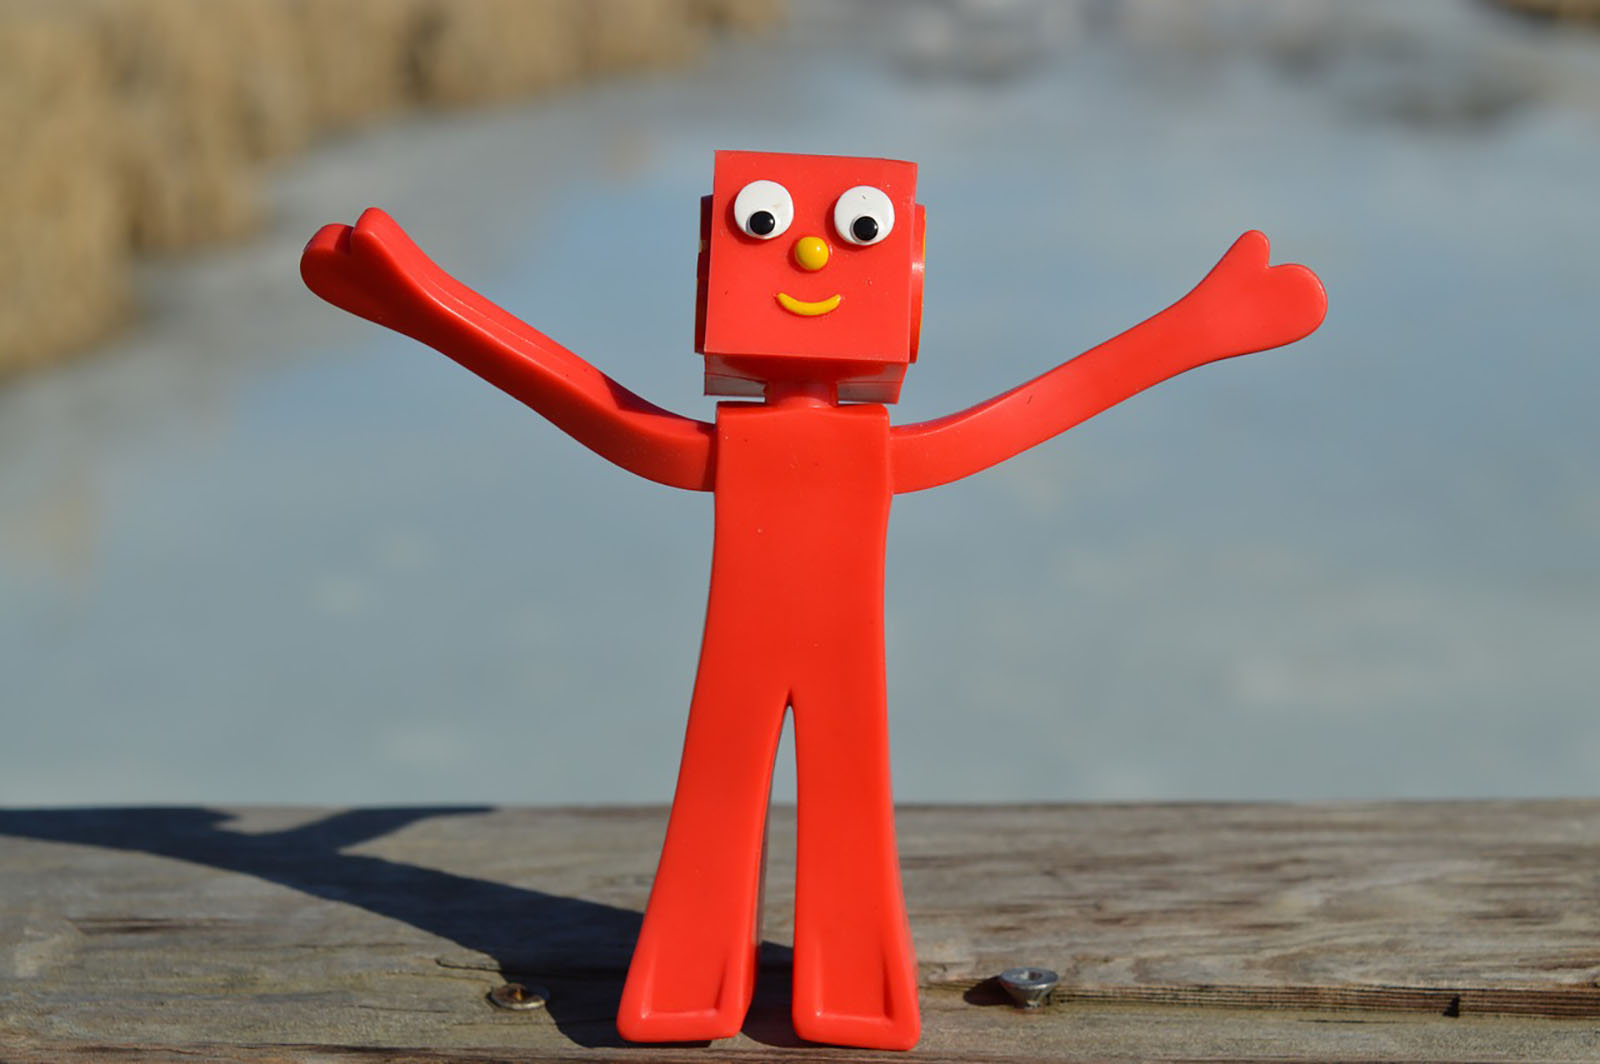 A red robot celebrating with it's arms in the air.